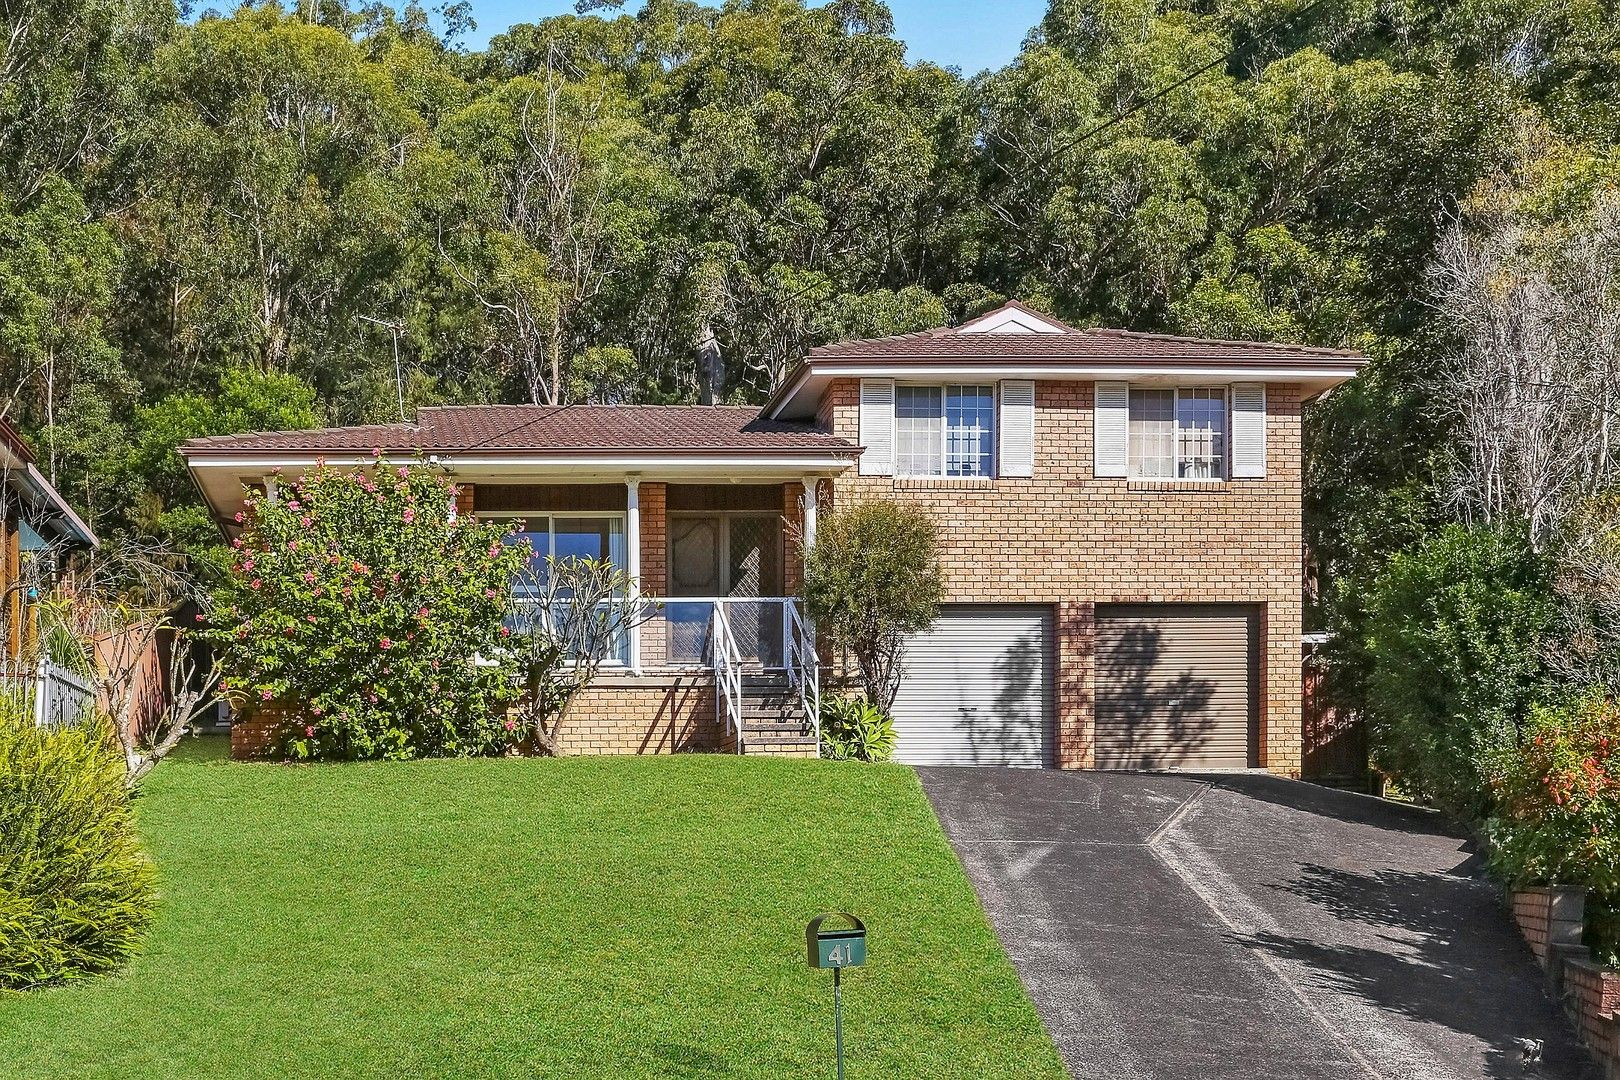 41 Tania Drive, Point Clare NSW 2250, Image 0